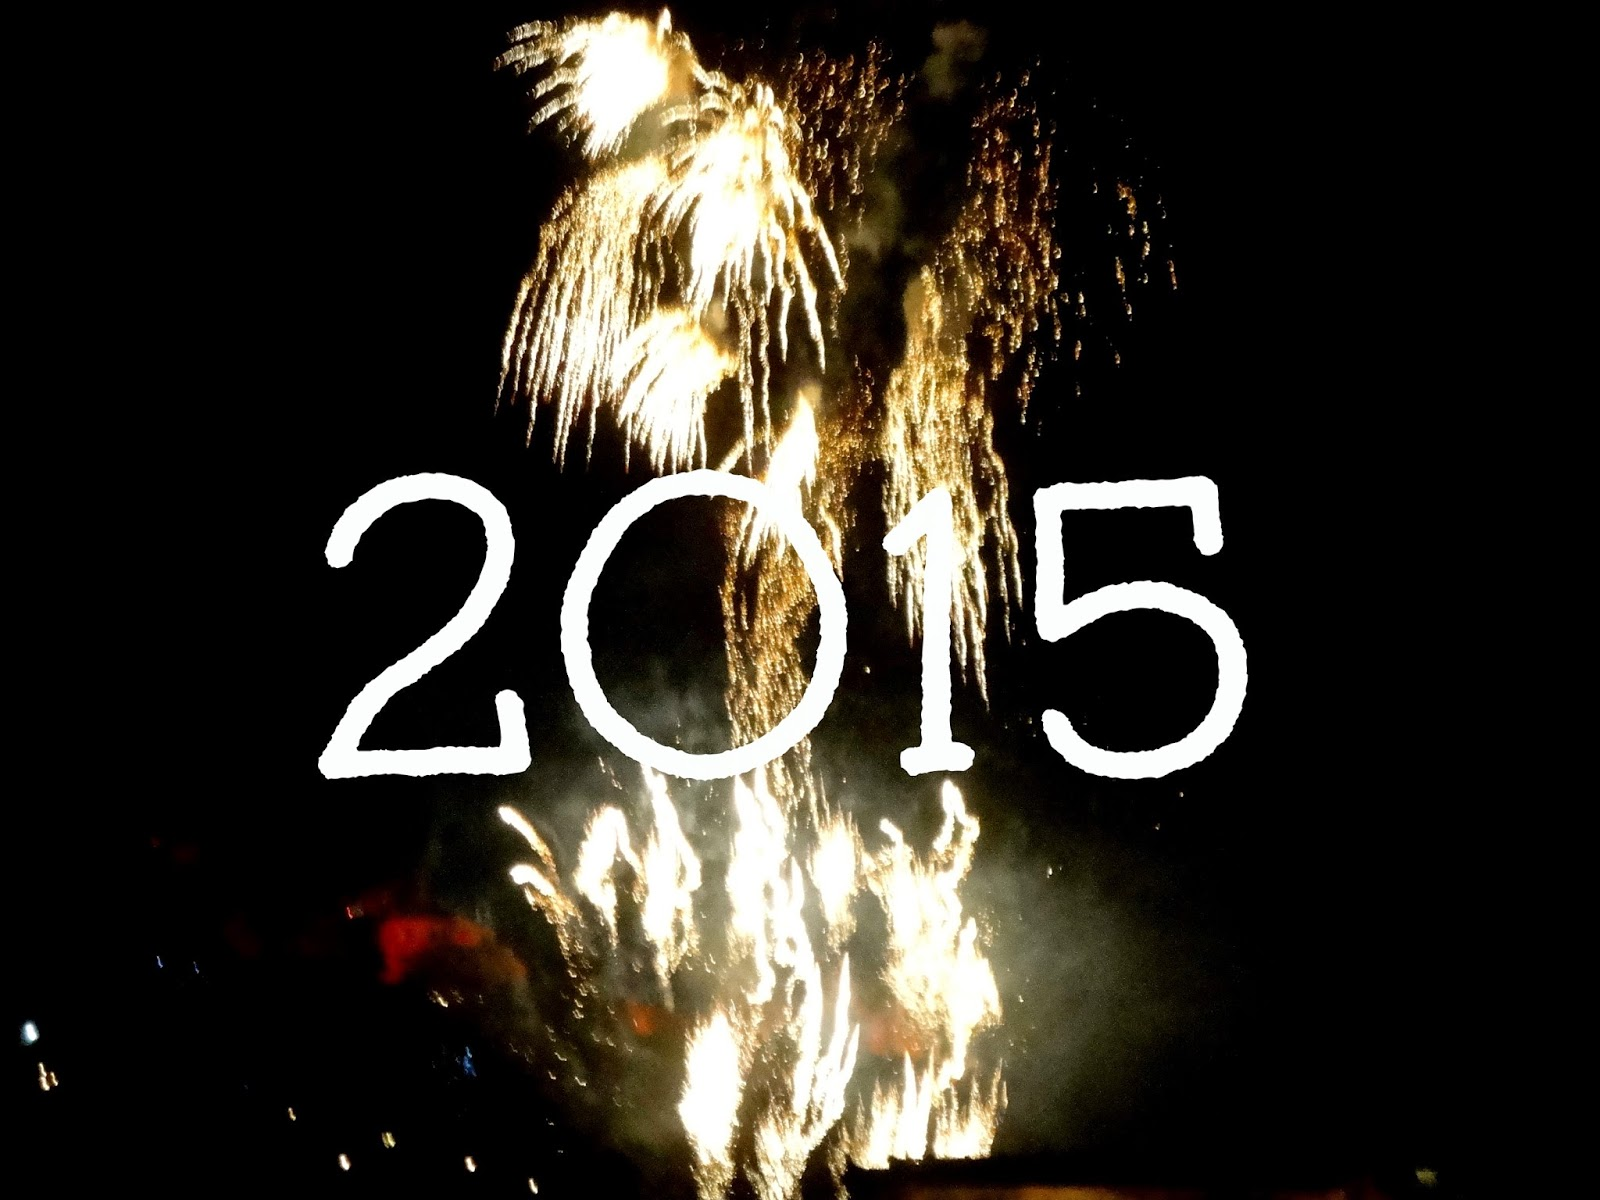 2015 text on New Year fireworks background from Edinburgh Hogmanay